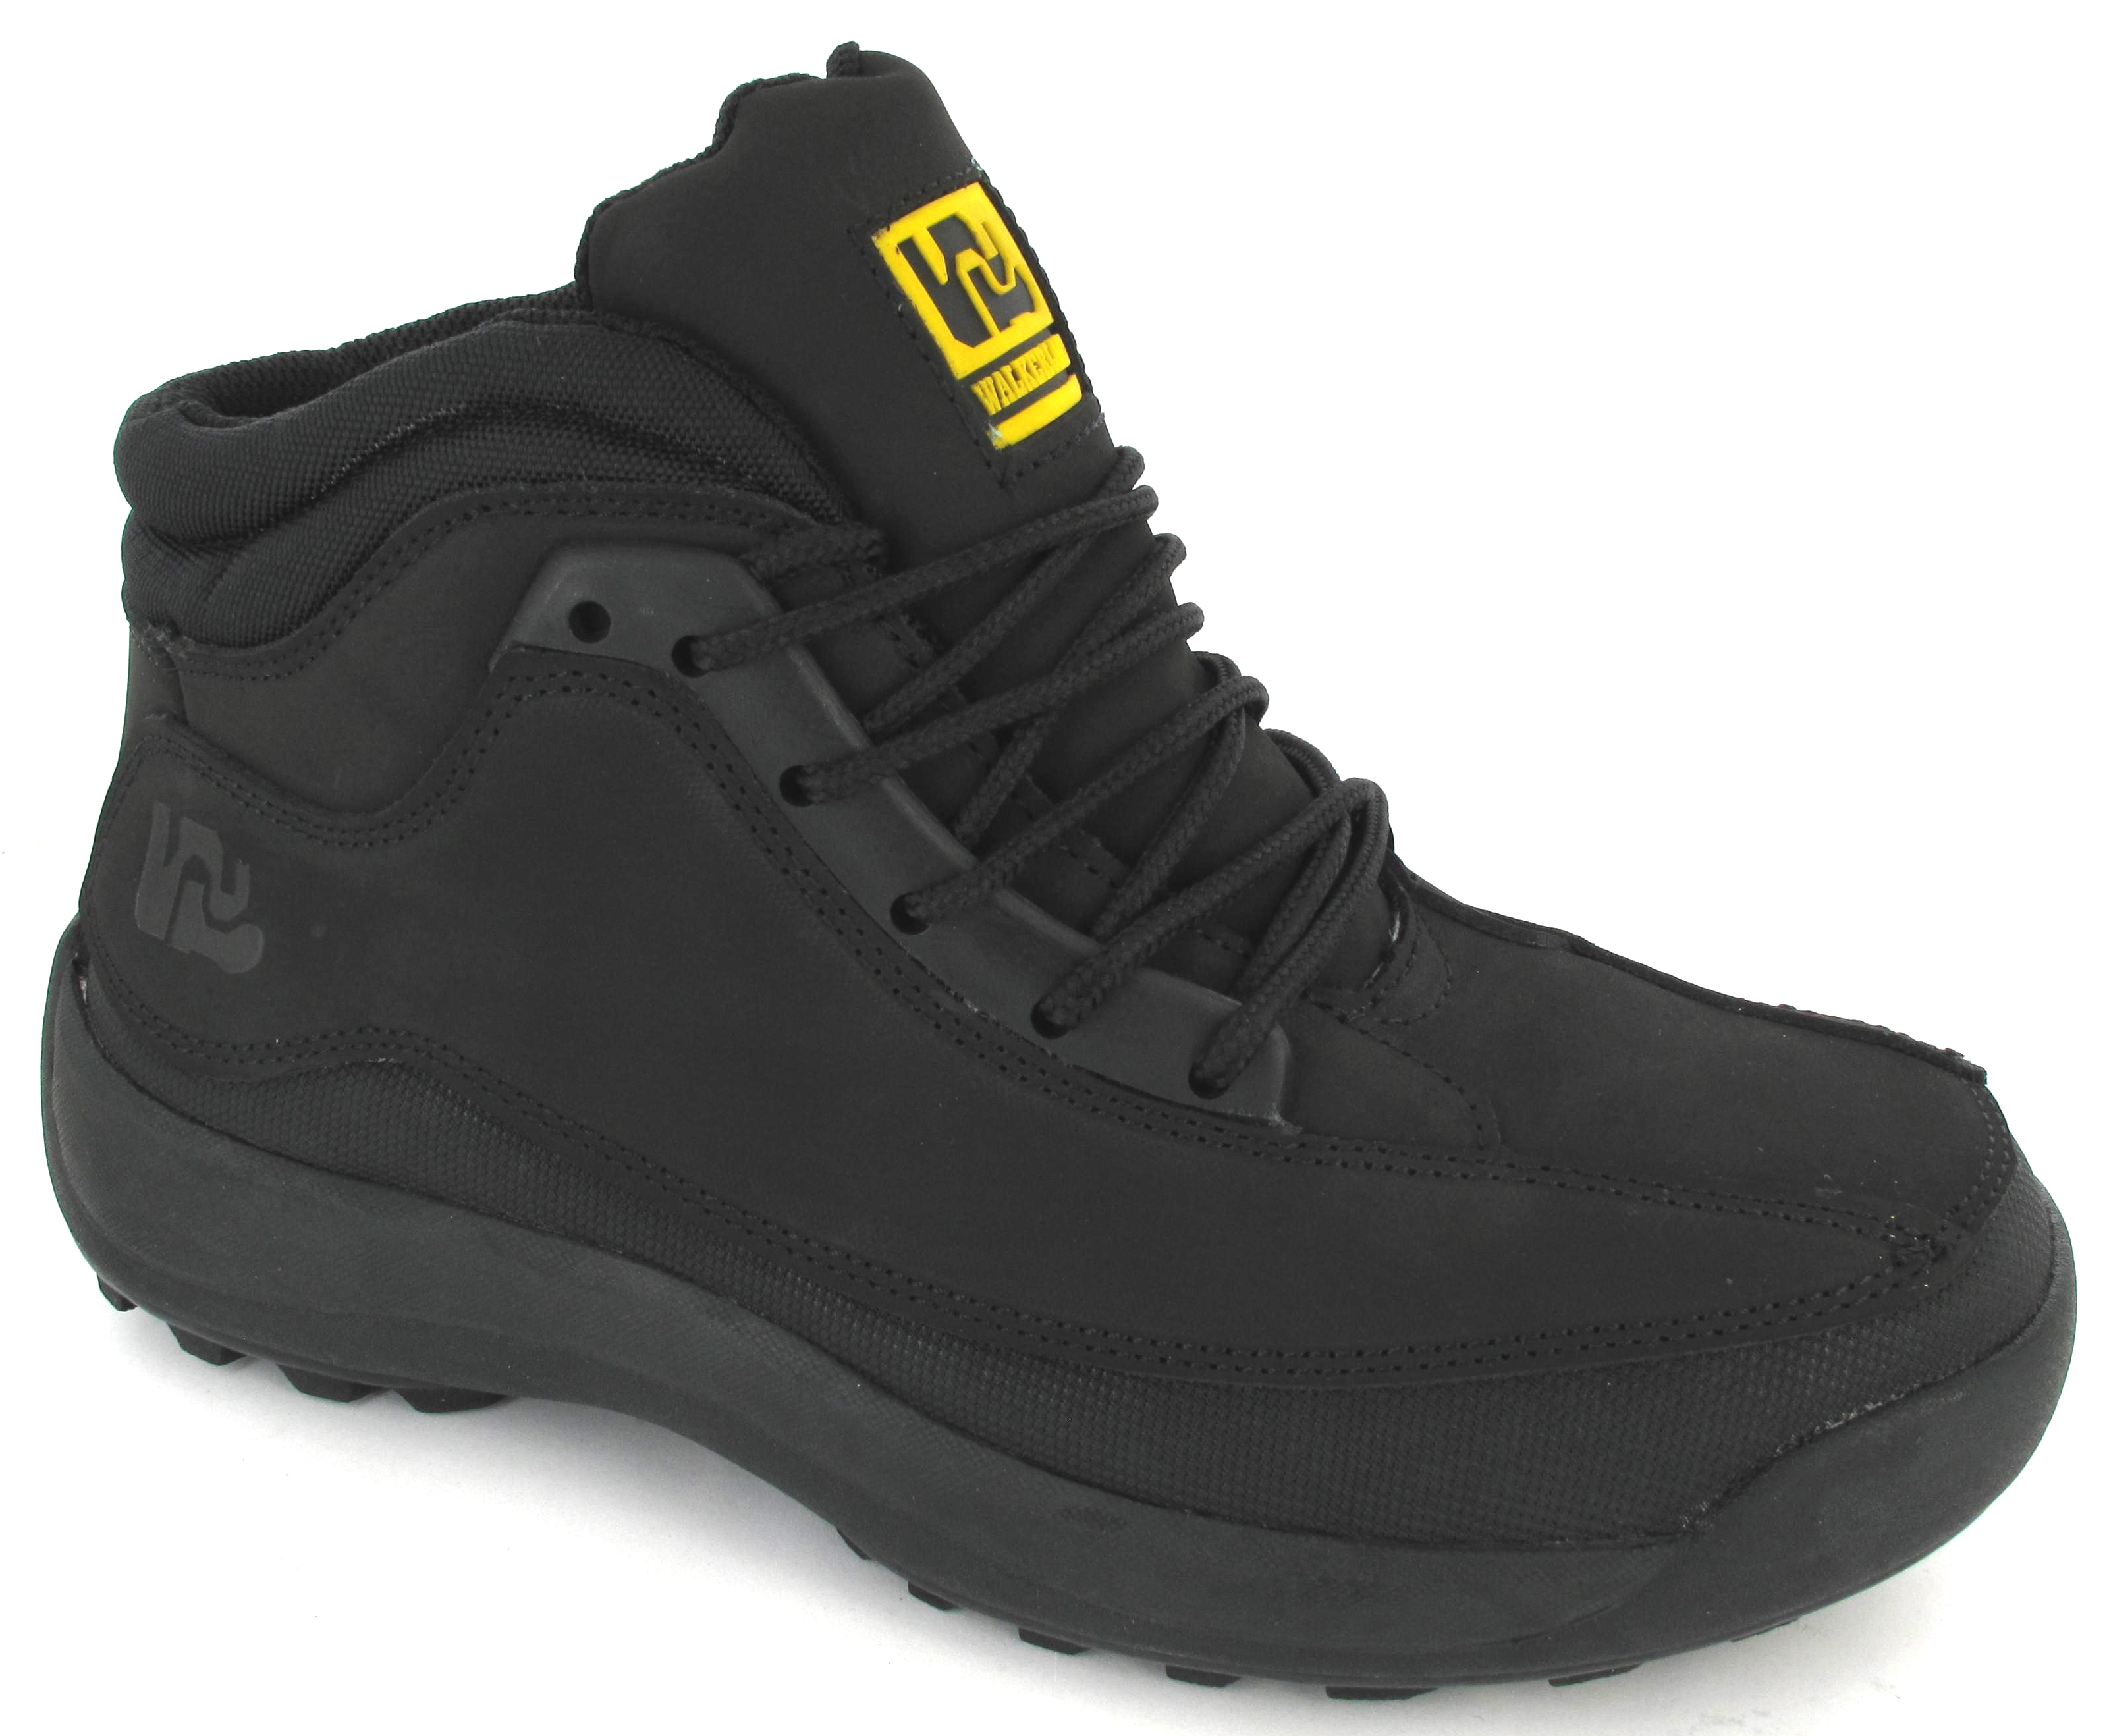 Keen Hiking Boots